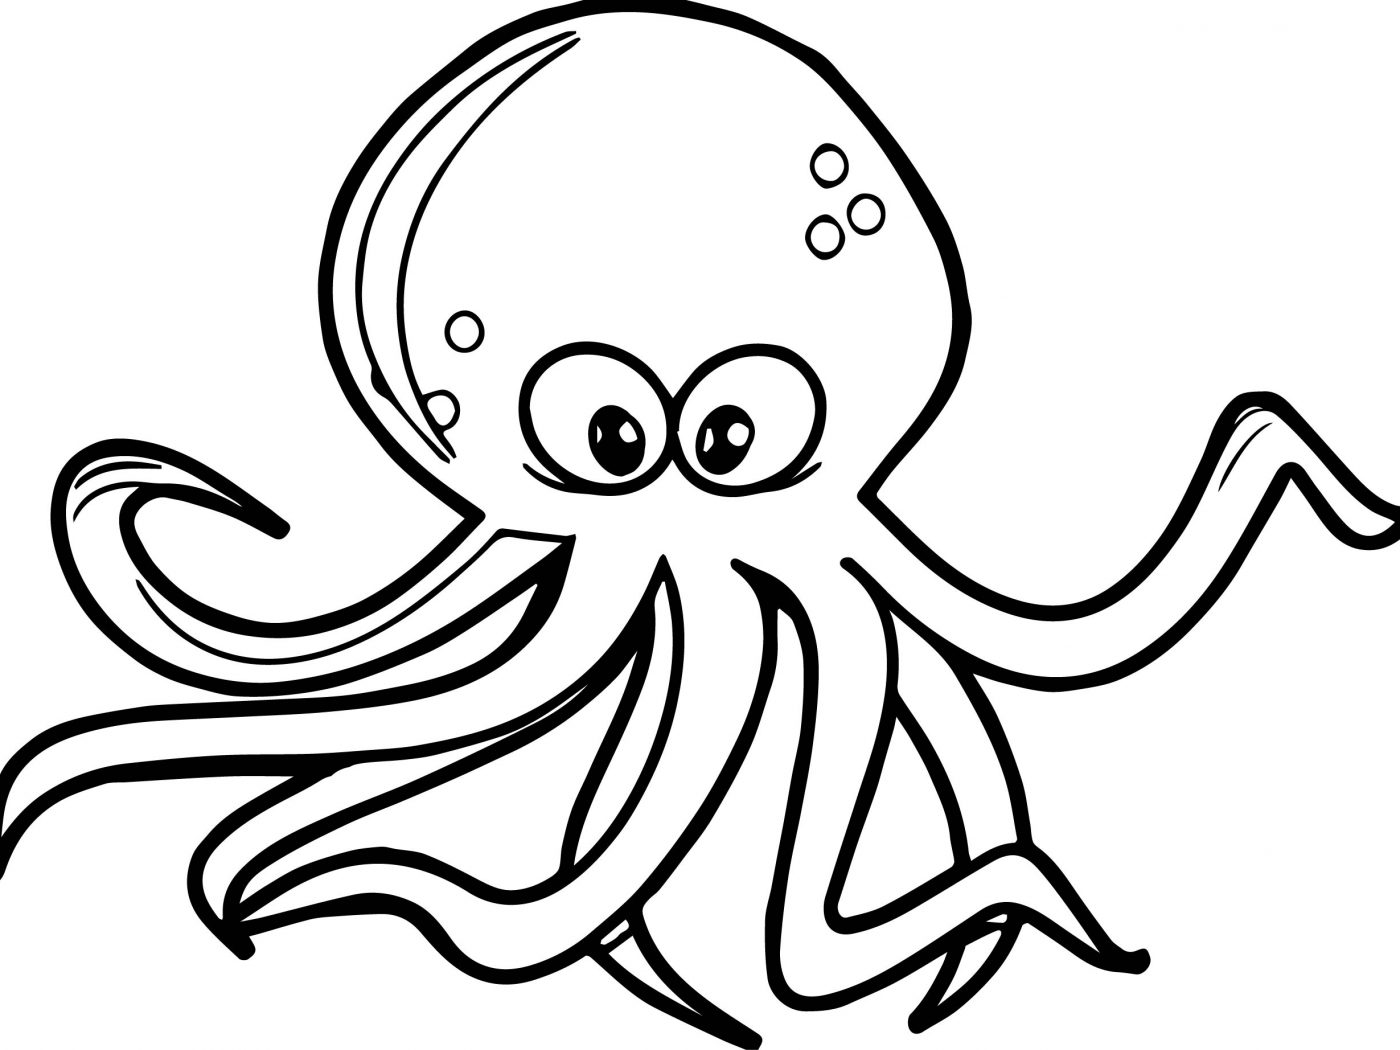 1400x1050 Musky Octopus Coloring Page Free Printable Pages Animals Preschool